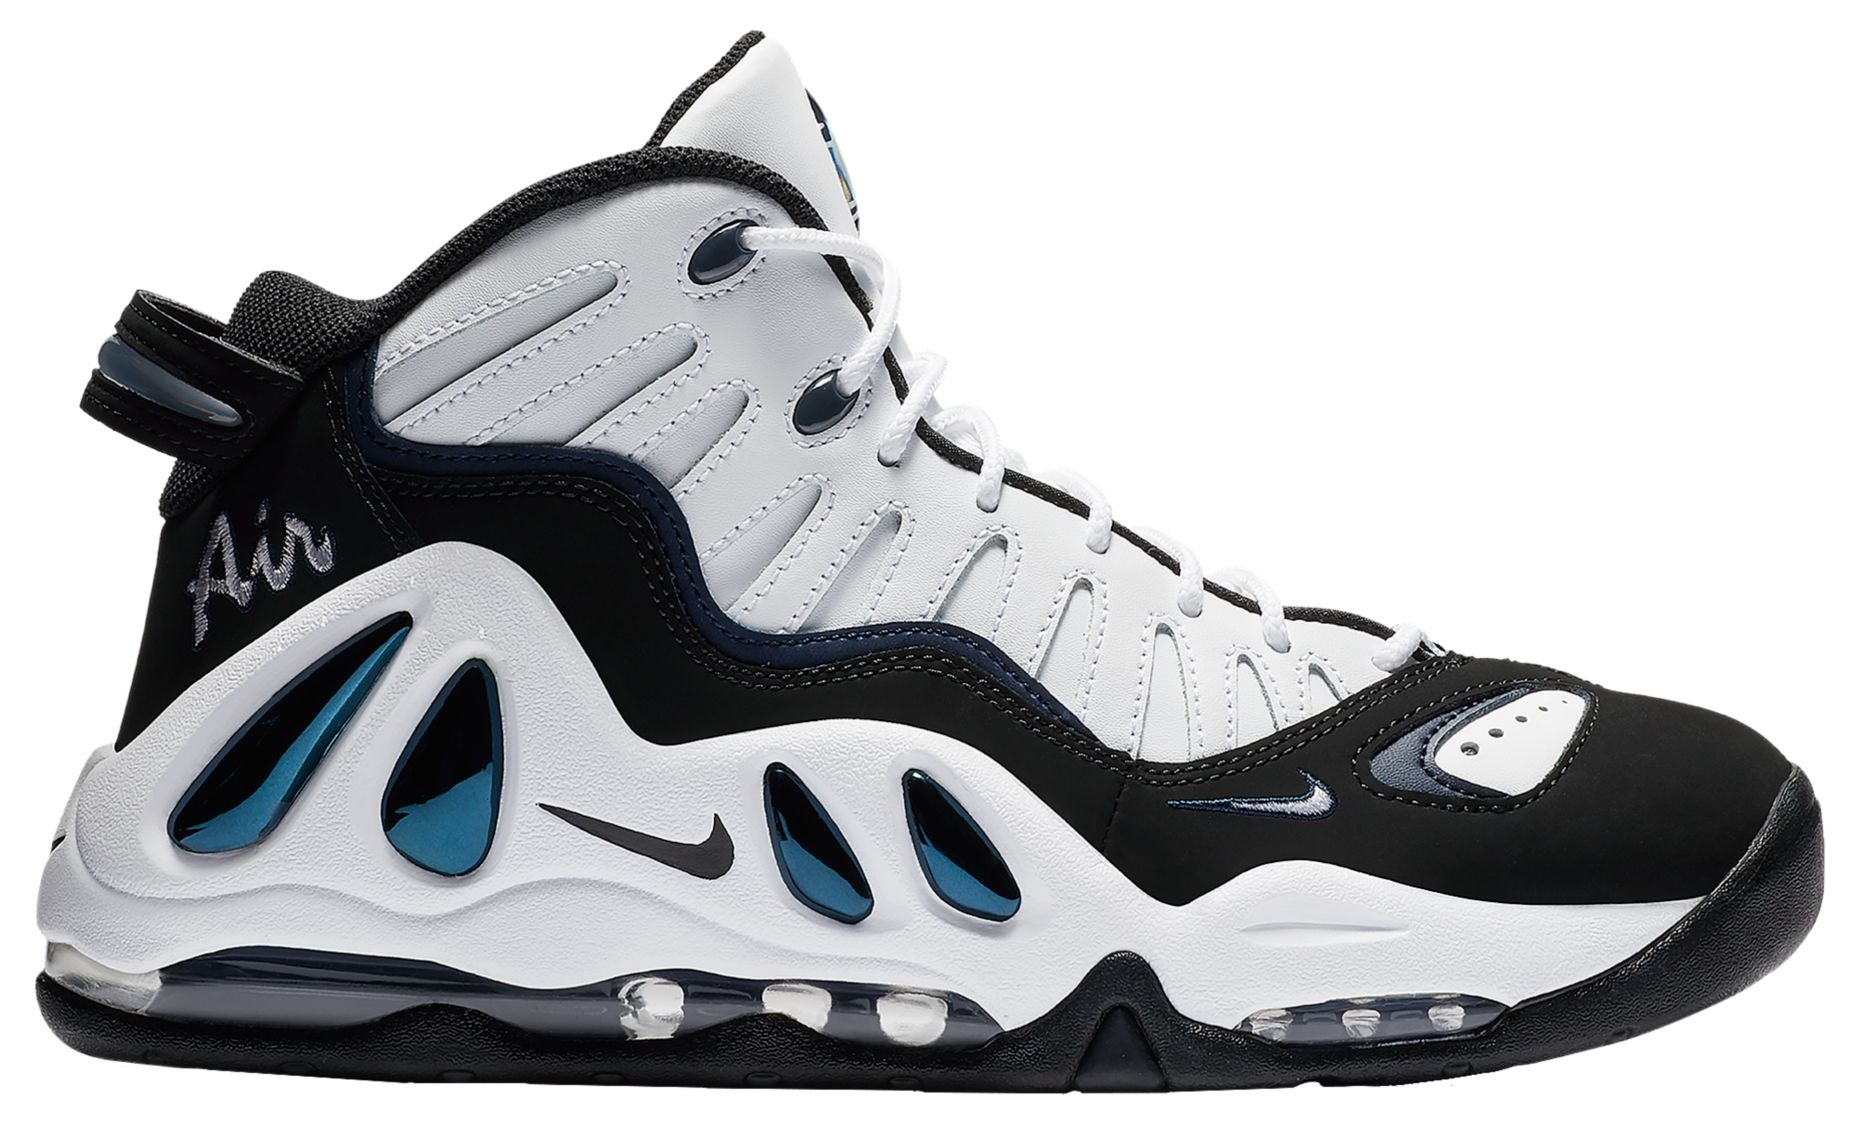 finest selection 0758e 3dd93 The Nike Air Max Uptempo 97 Will Be Back Next Month ...